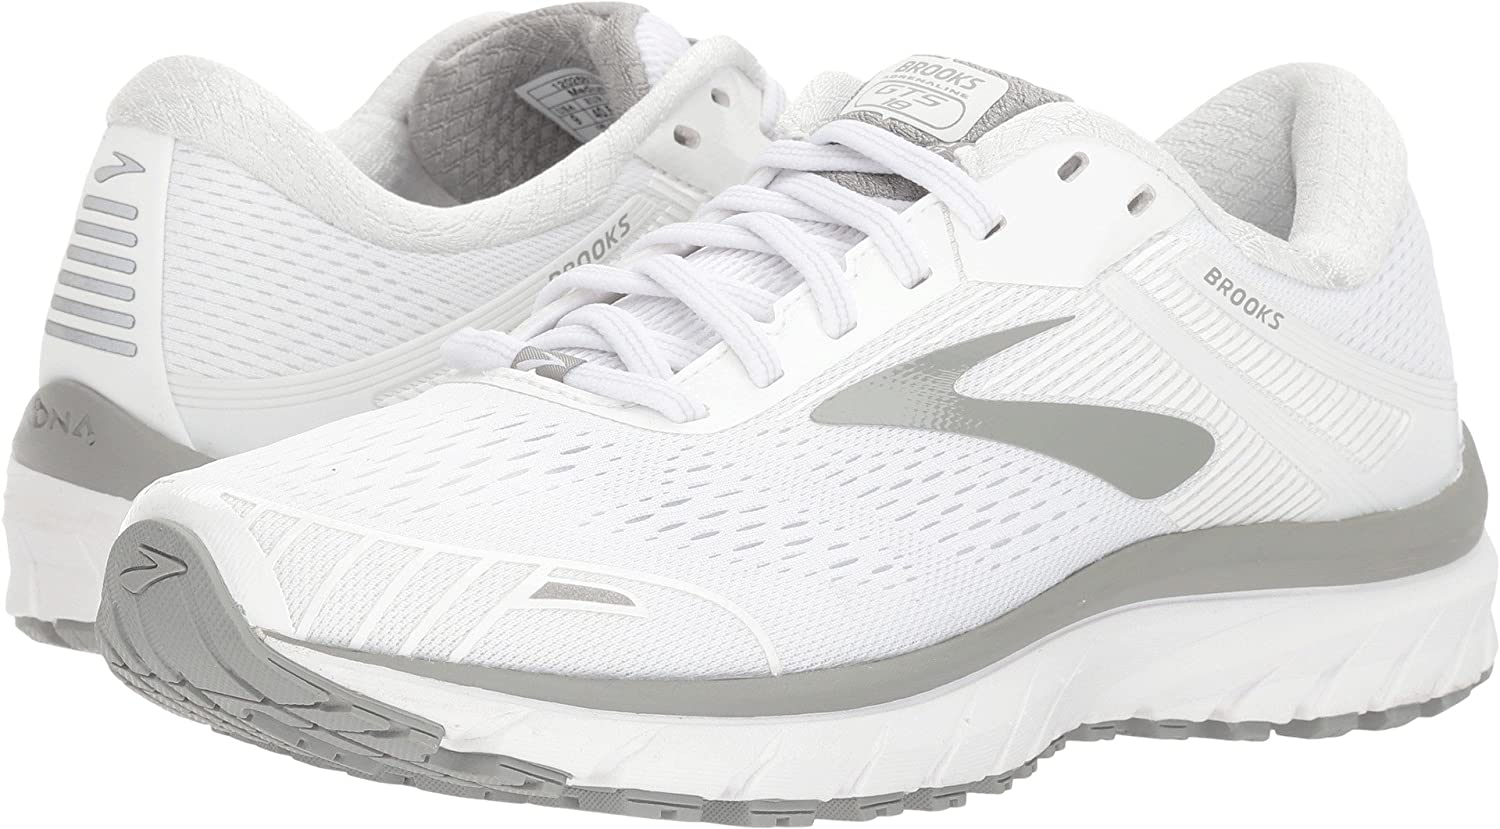 Brooks Womens Adrenaline GTS 18 B072BNFNQV 7.5 B(M) US|White/White/Grey